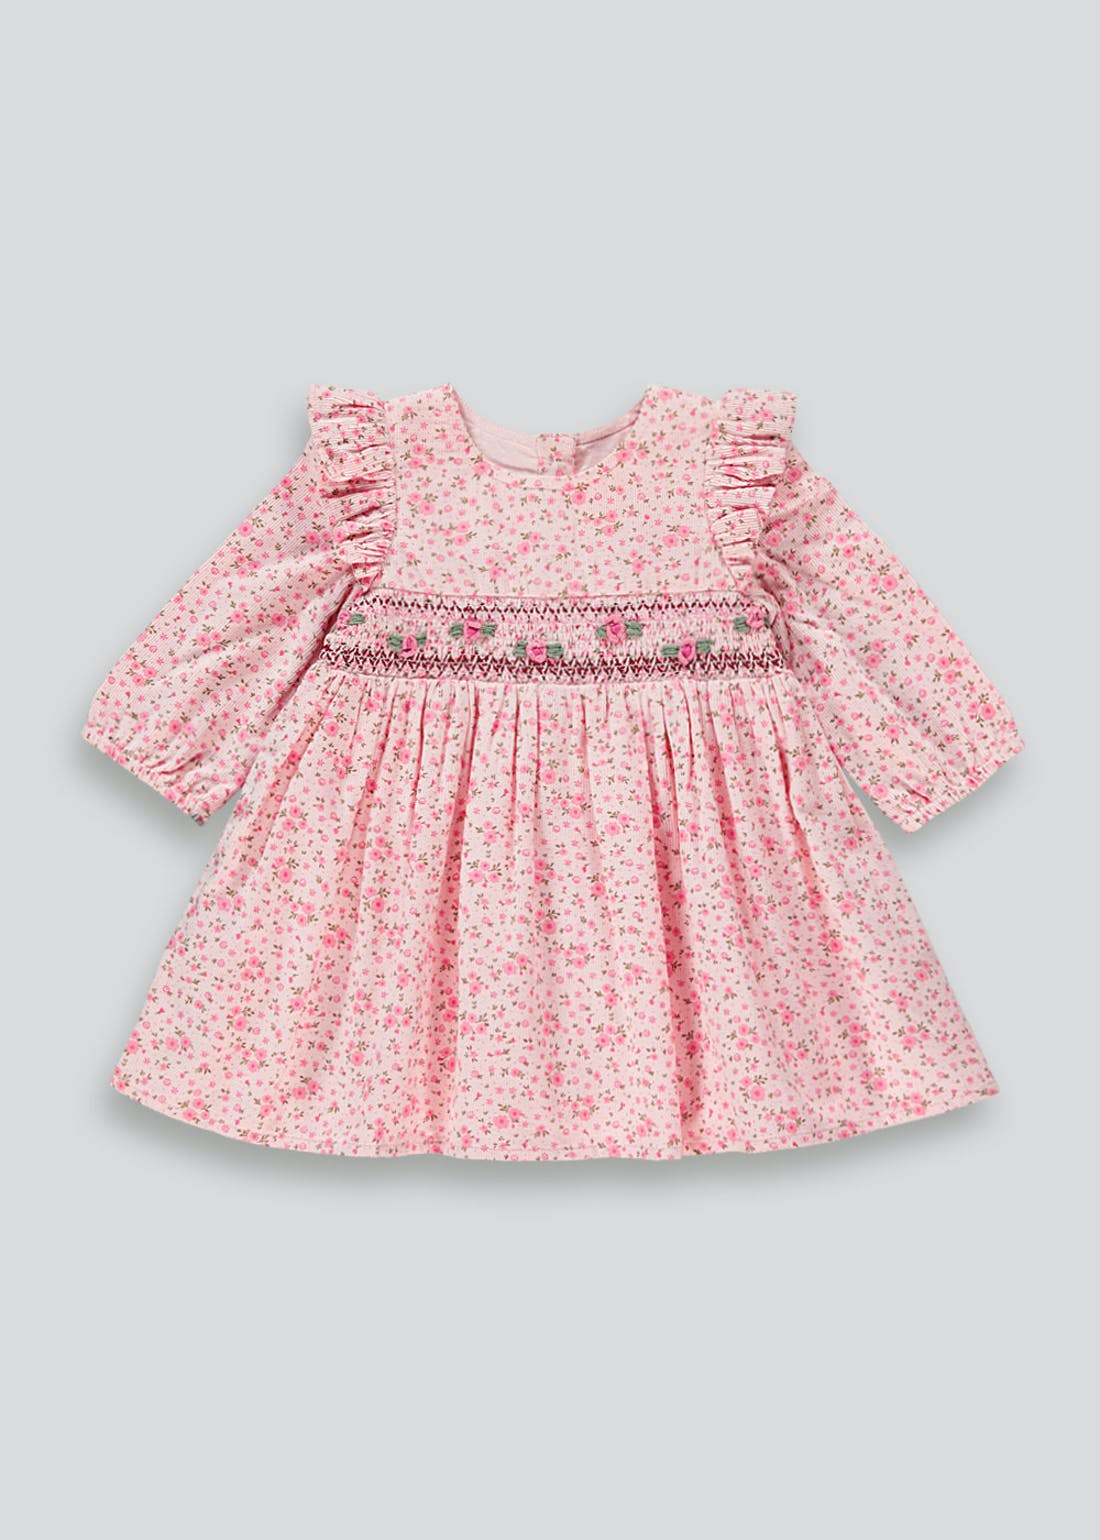 Girls Pink Floral Long Sleeve Dress (Tiny Baby-18mths)